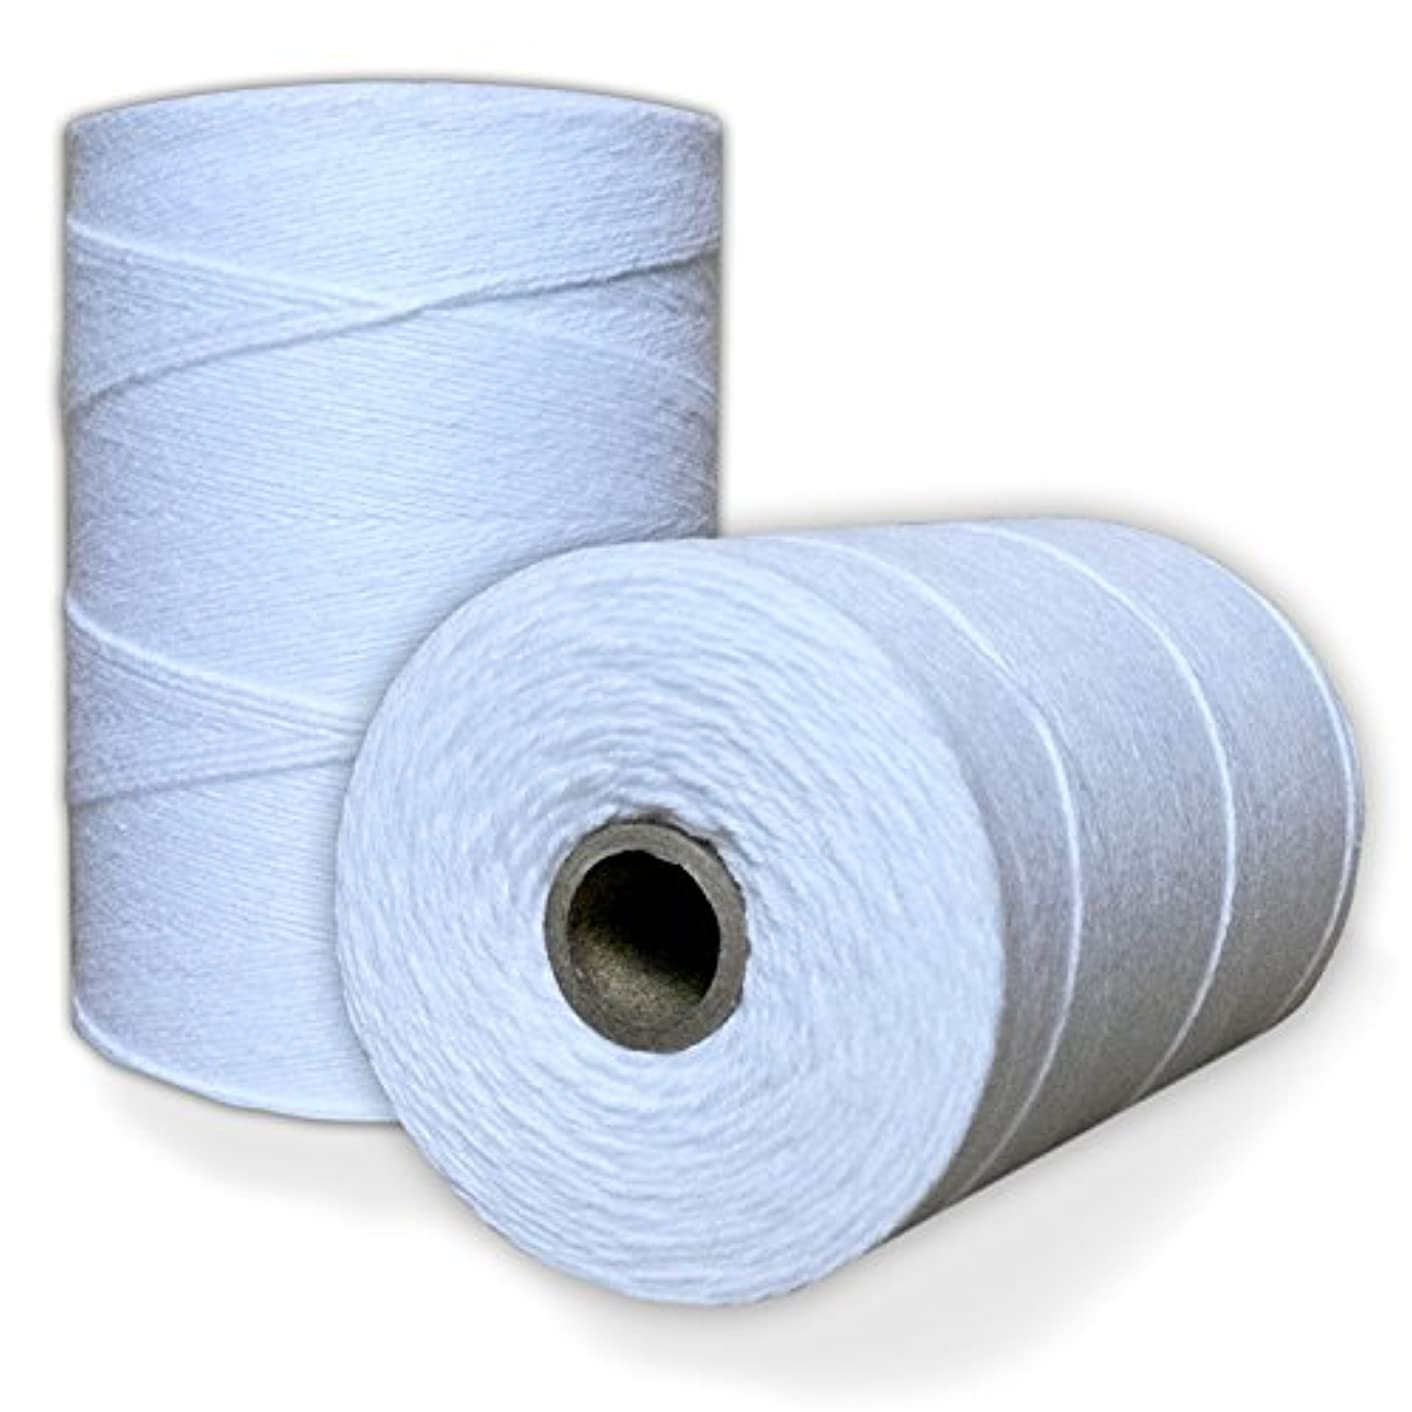 100% Cotton Loom Warp Thread (Pure White), 8/4 Warp Yarn (800 YARDS), Perfect for weaving: carpet, tapestry, rug, blanket or pattern - Warping thread for ANY LOOM auzpgiot17605332